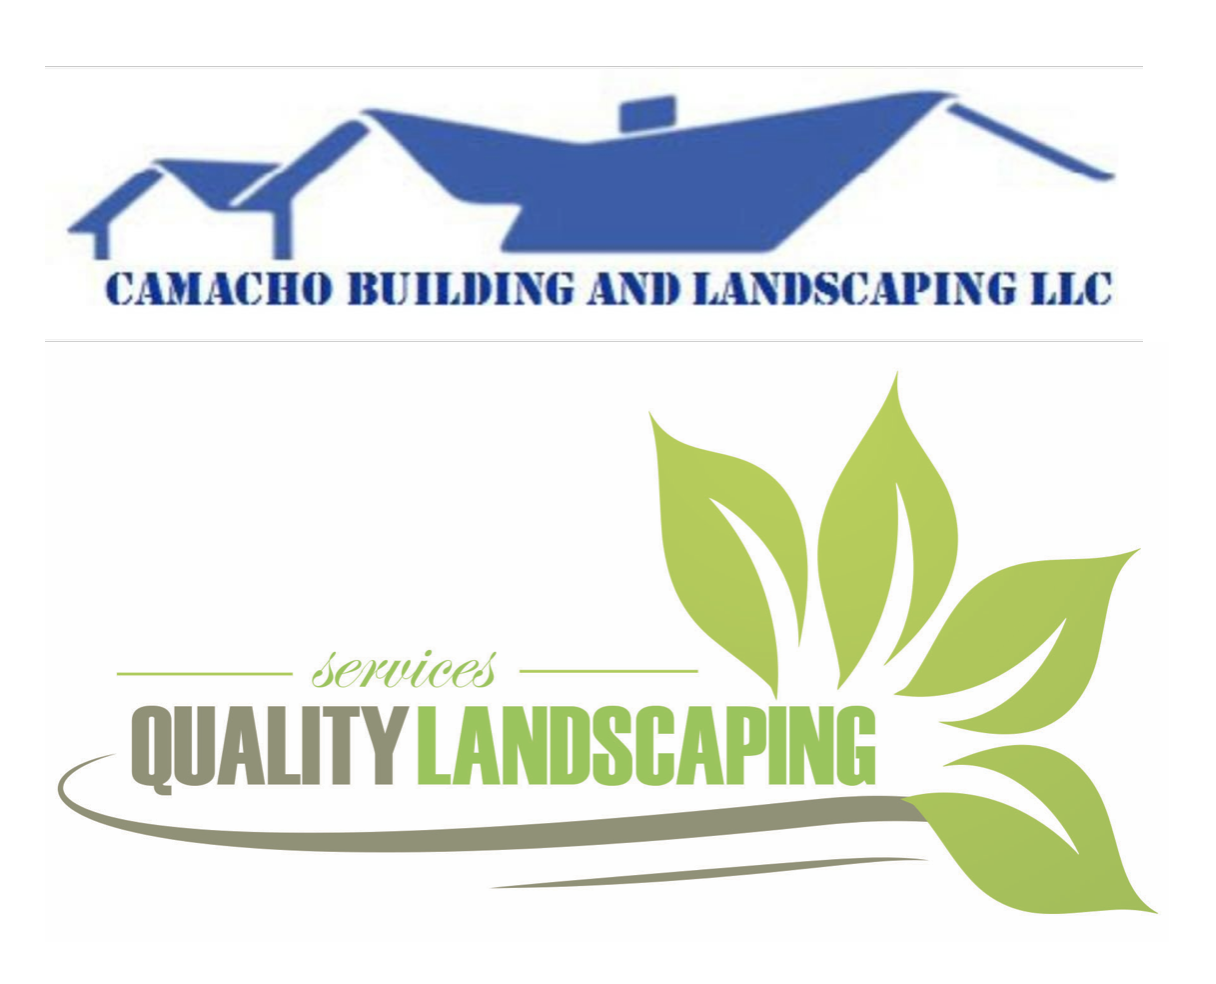 Camacho  Building  and  Landscaping  LLC